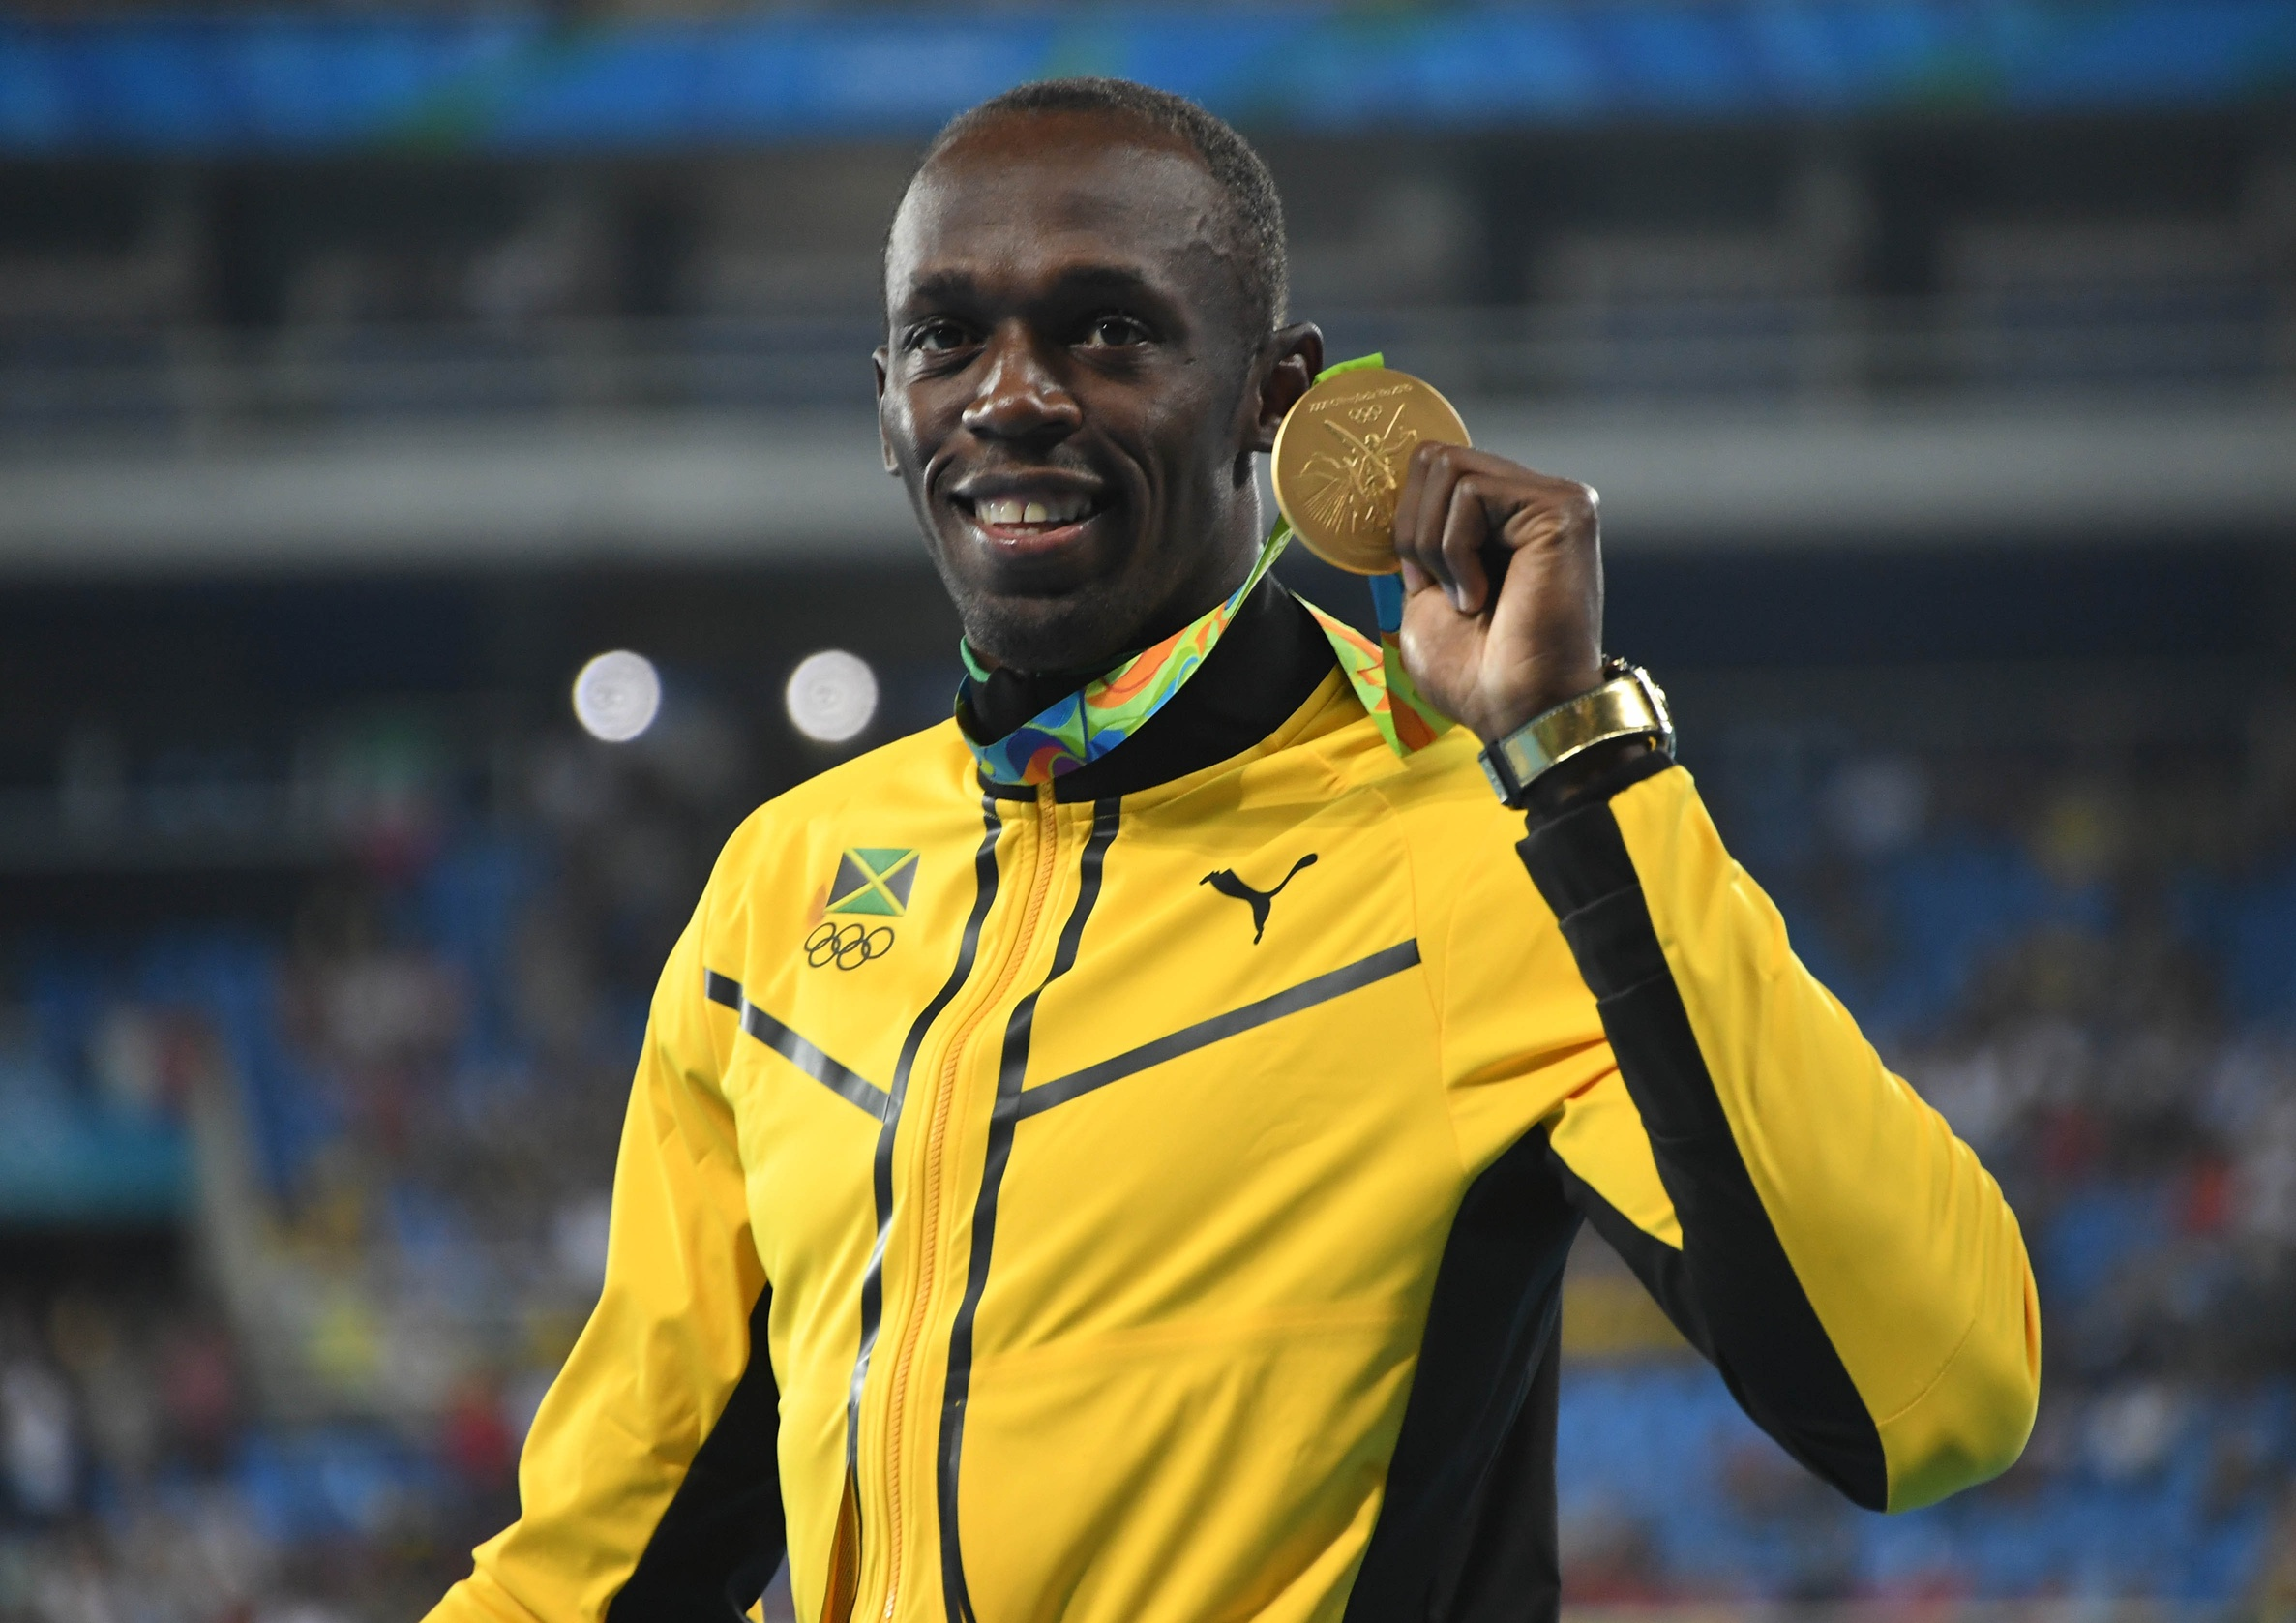 my favorite sports person relay usen bolt Bolt was the sport's new phenom the lanky 6-foot-5-inch jamaican giant among much smaller and more compact sprinters, had people buzzing about his potential enlarge this image.